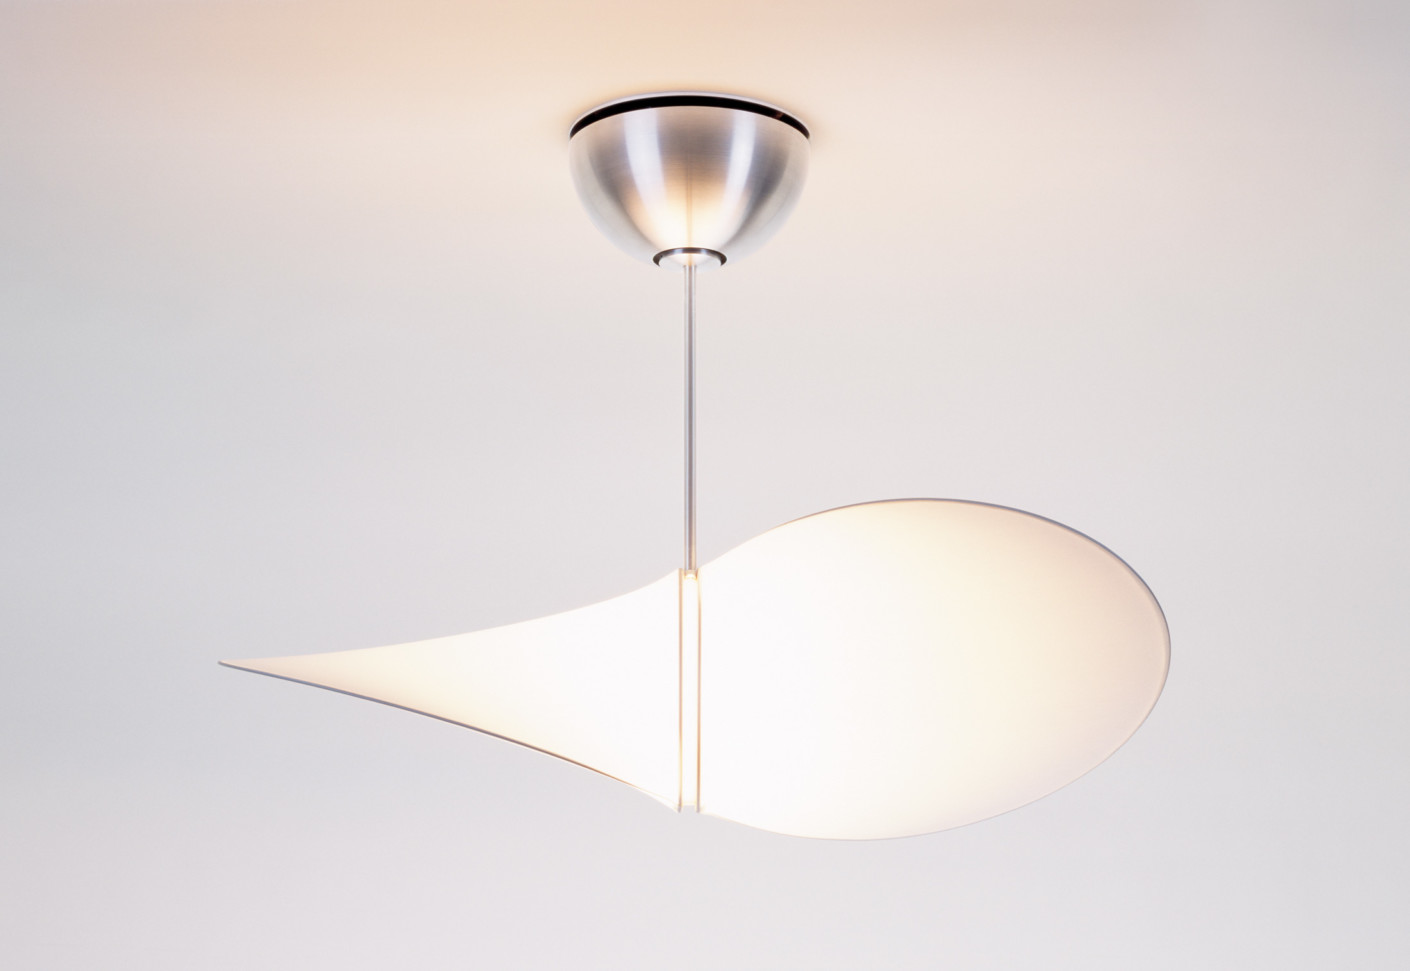 Serien Lighting Propeller By Serien.lighting | Stylepark